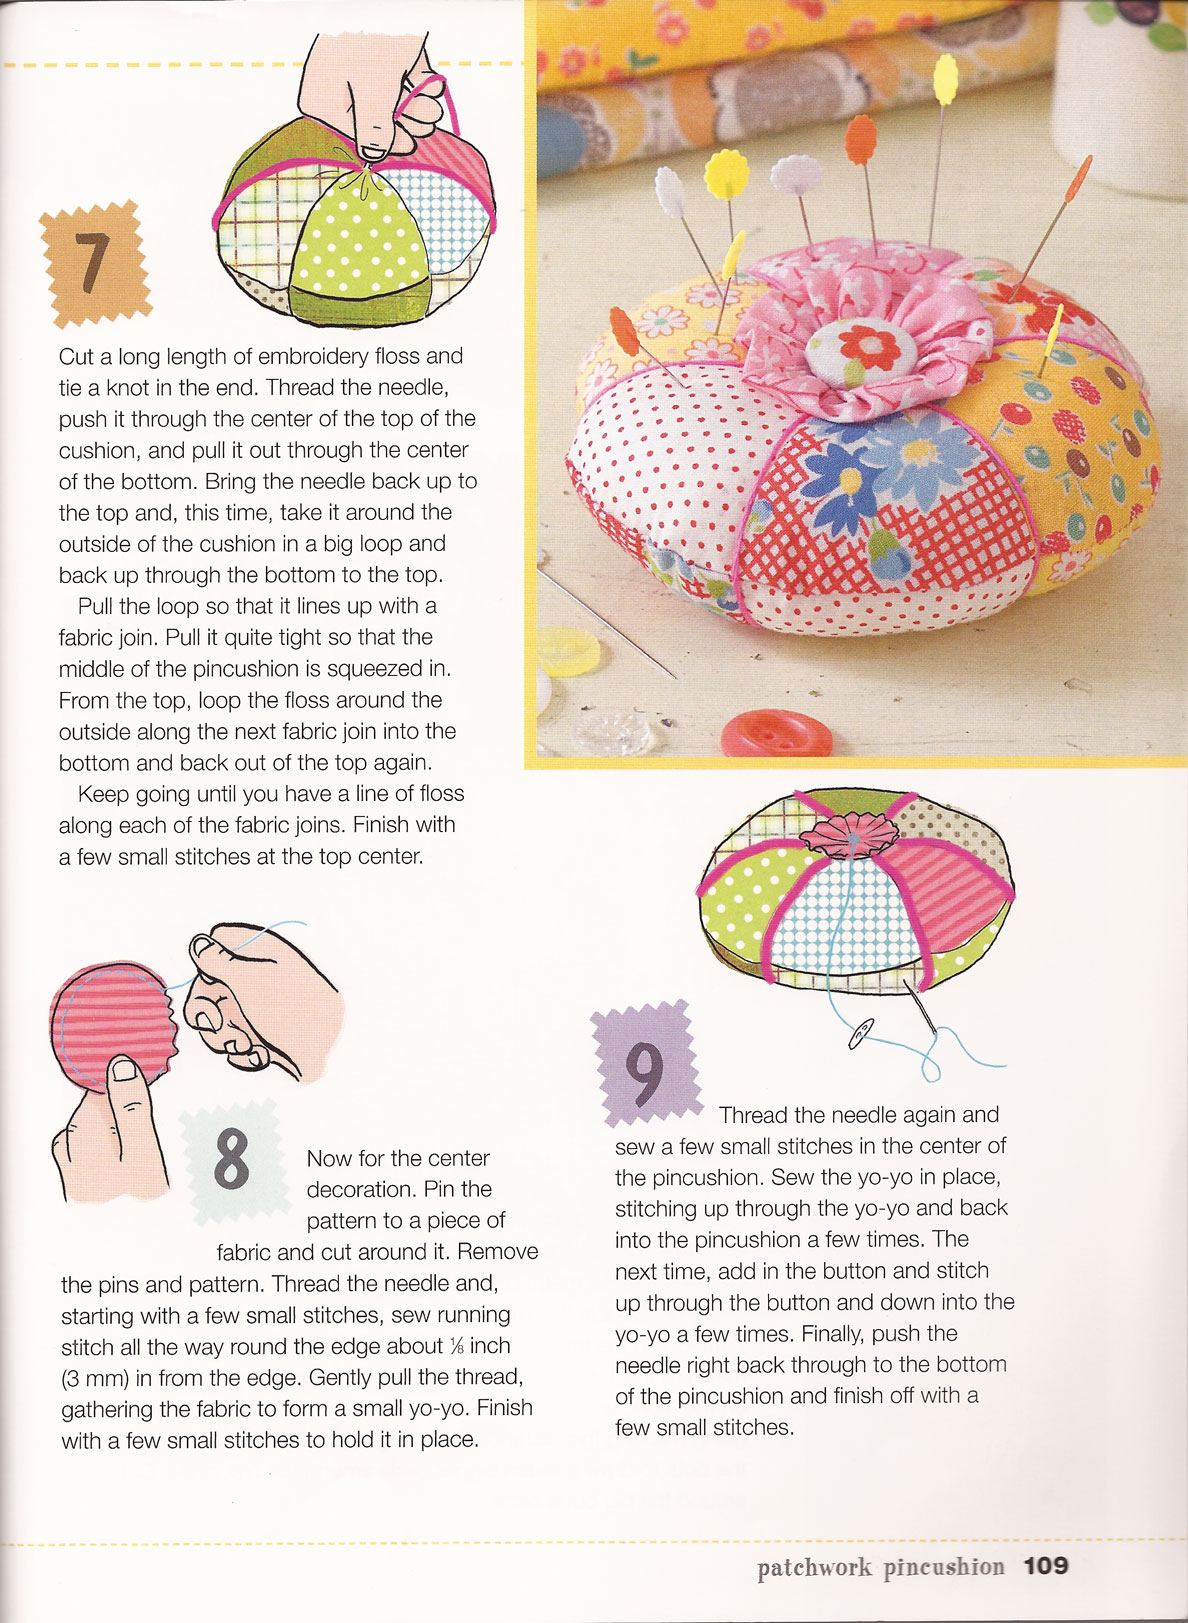 My First Sewing Book Pincushion Project | BookAddicts.org